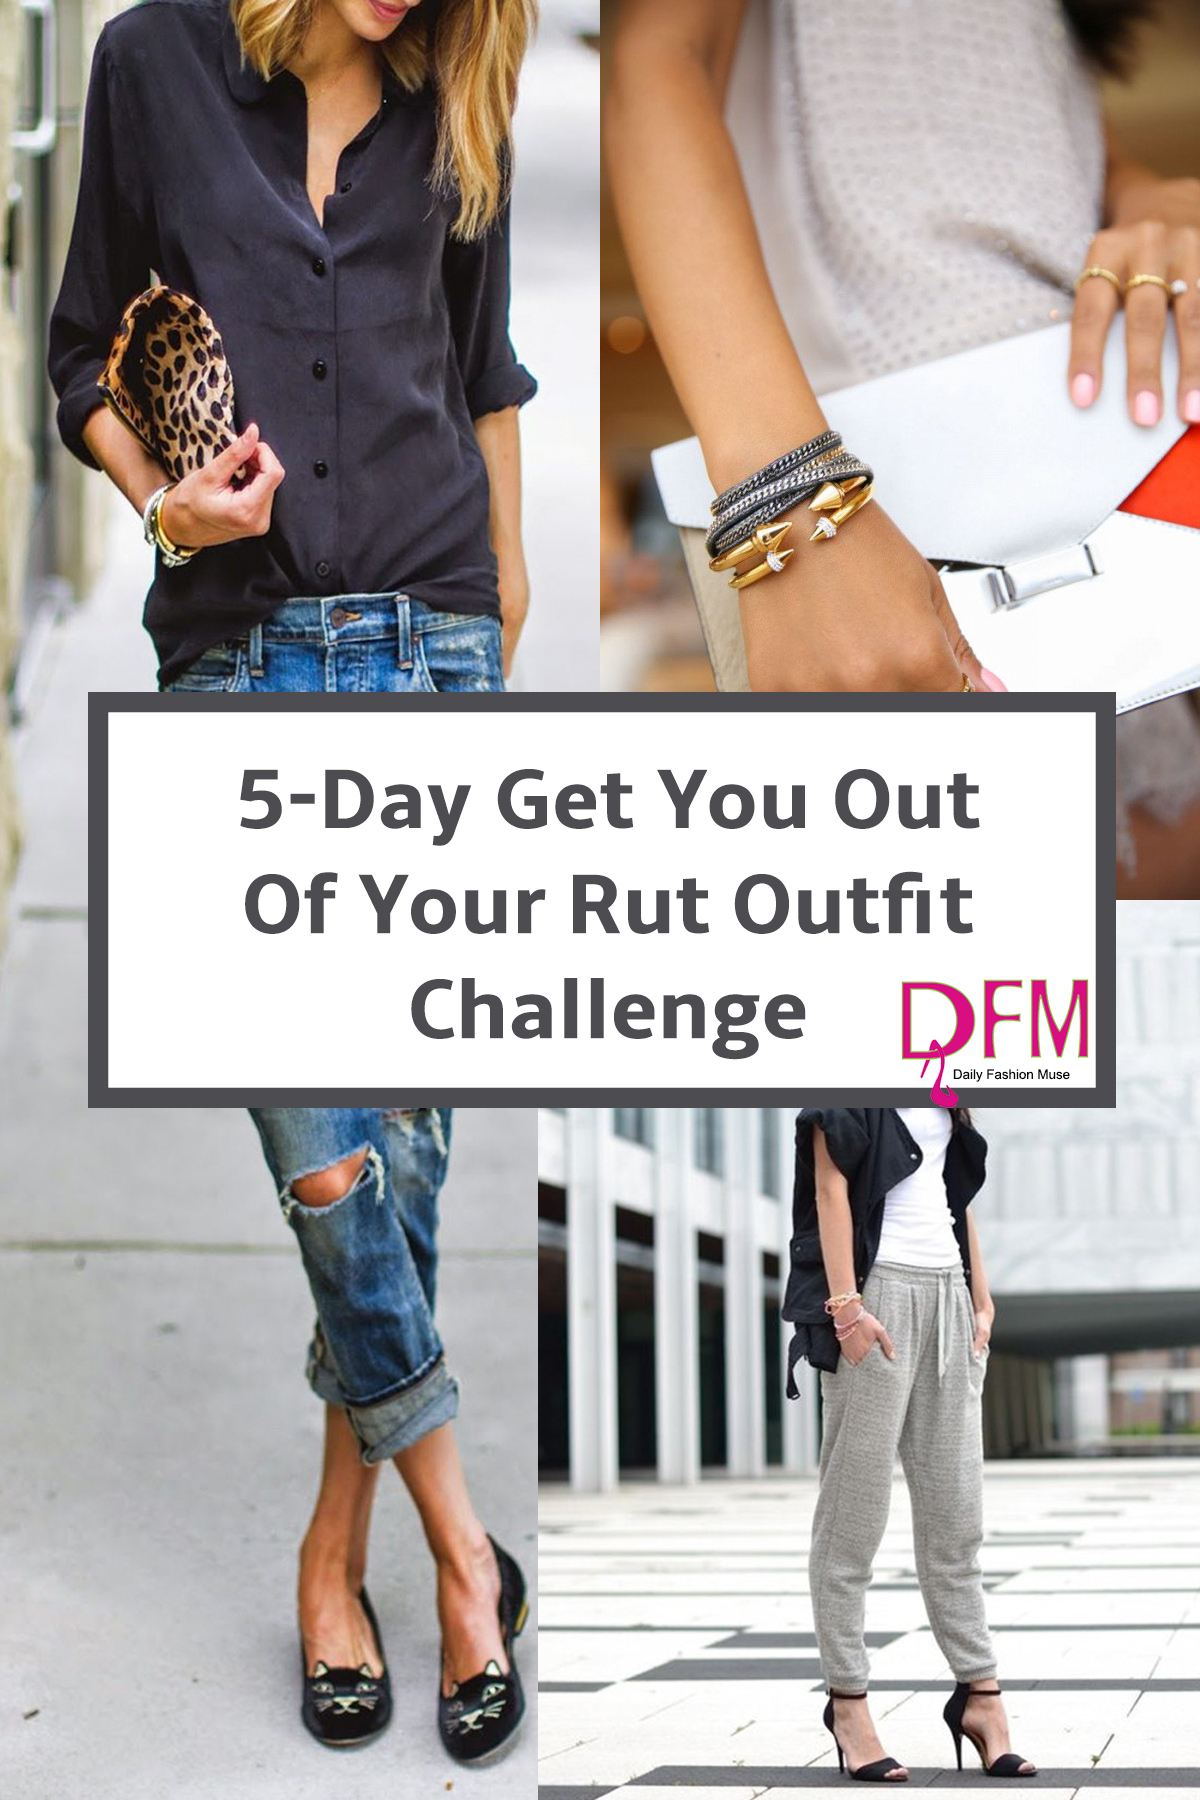 Here are 5 simple outfit challenges to help you restyle your look and get you out of the same old routine. Click through to take the challenge.